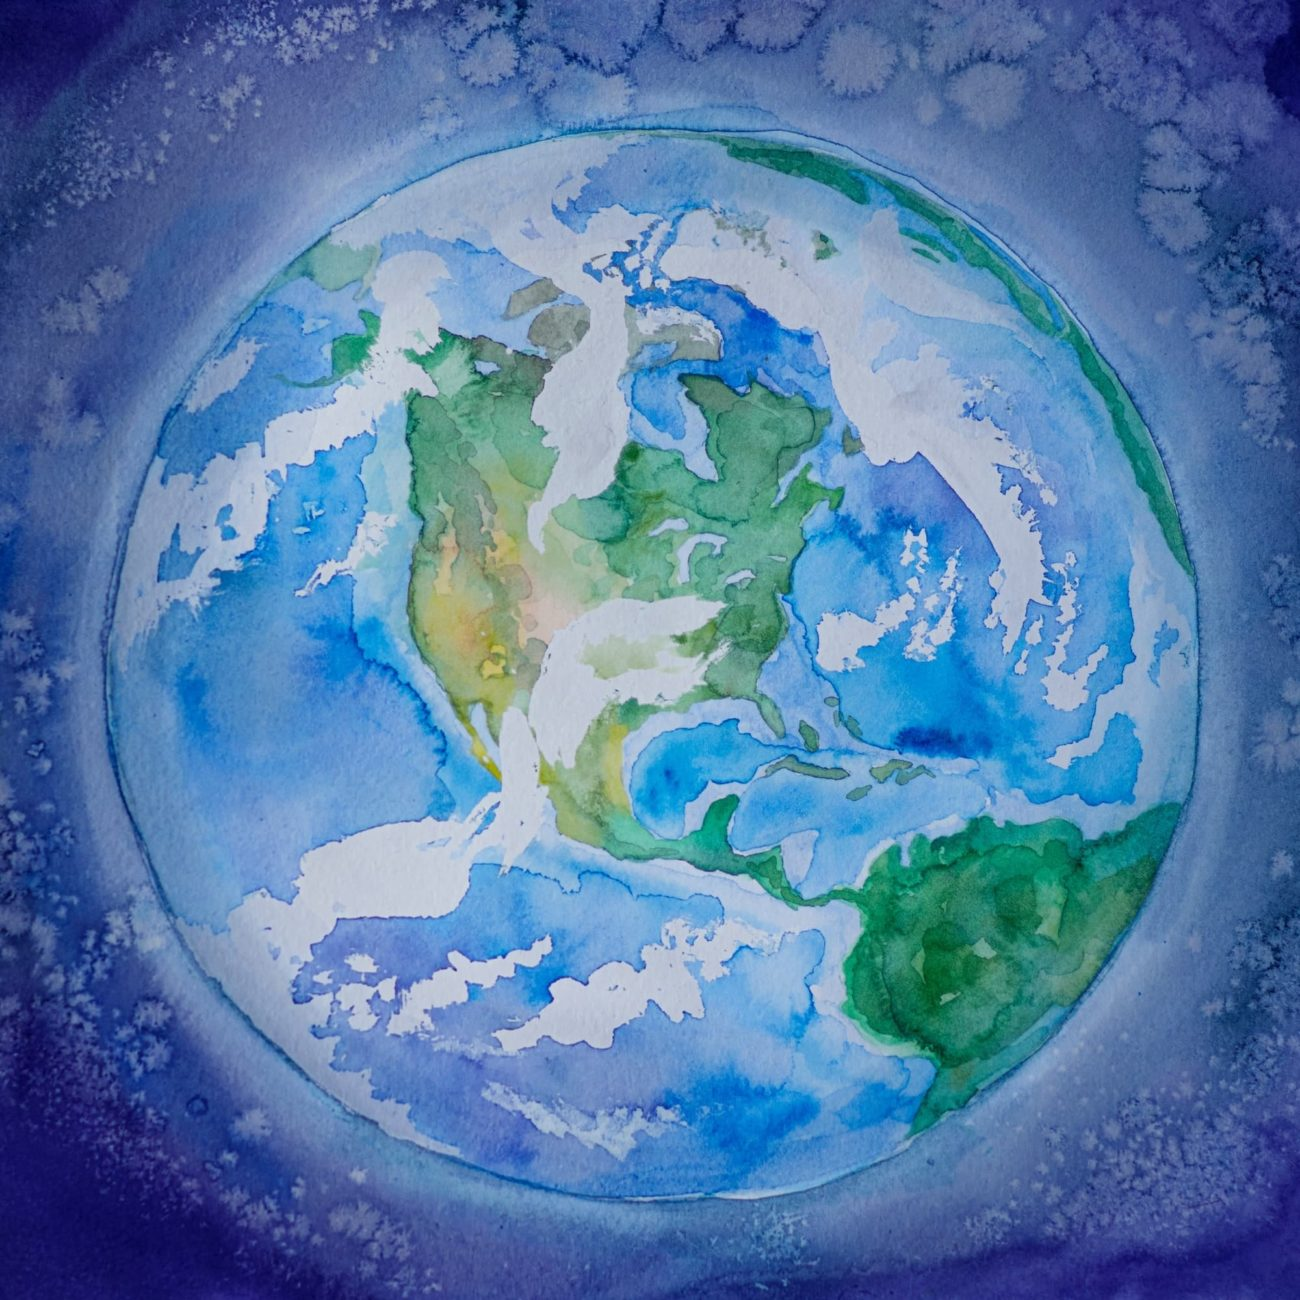 Pastel painting of planet Earth.